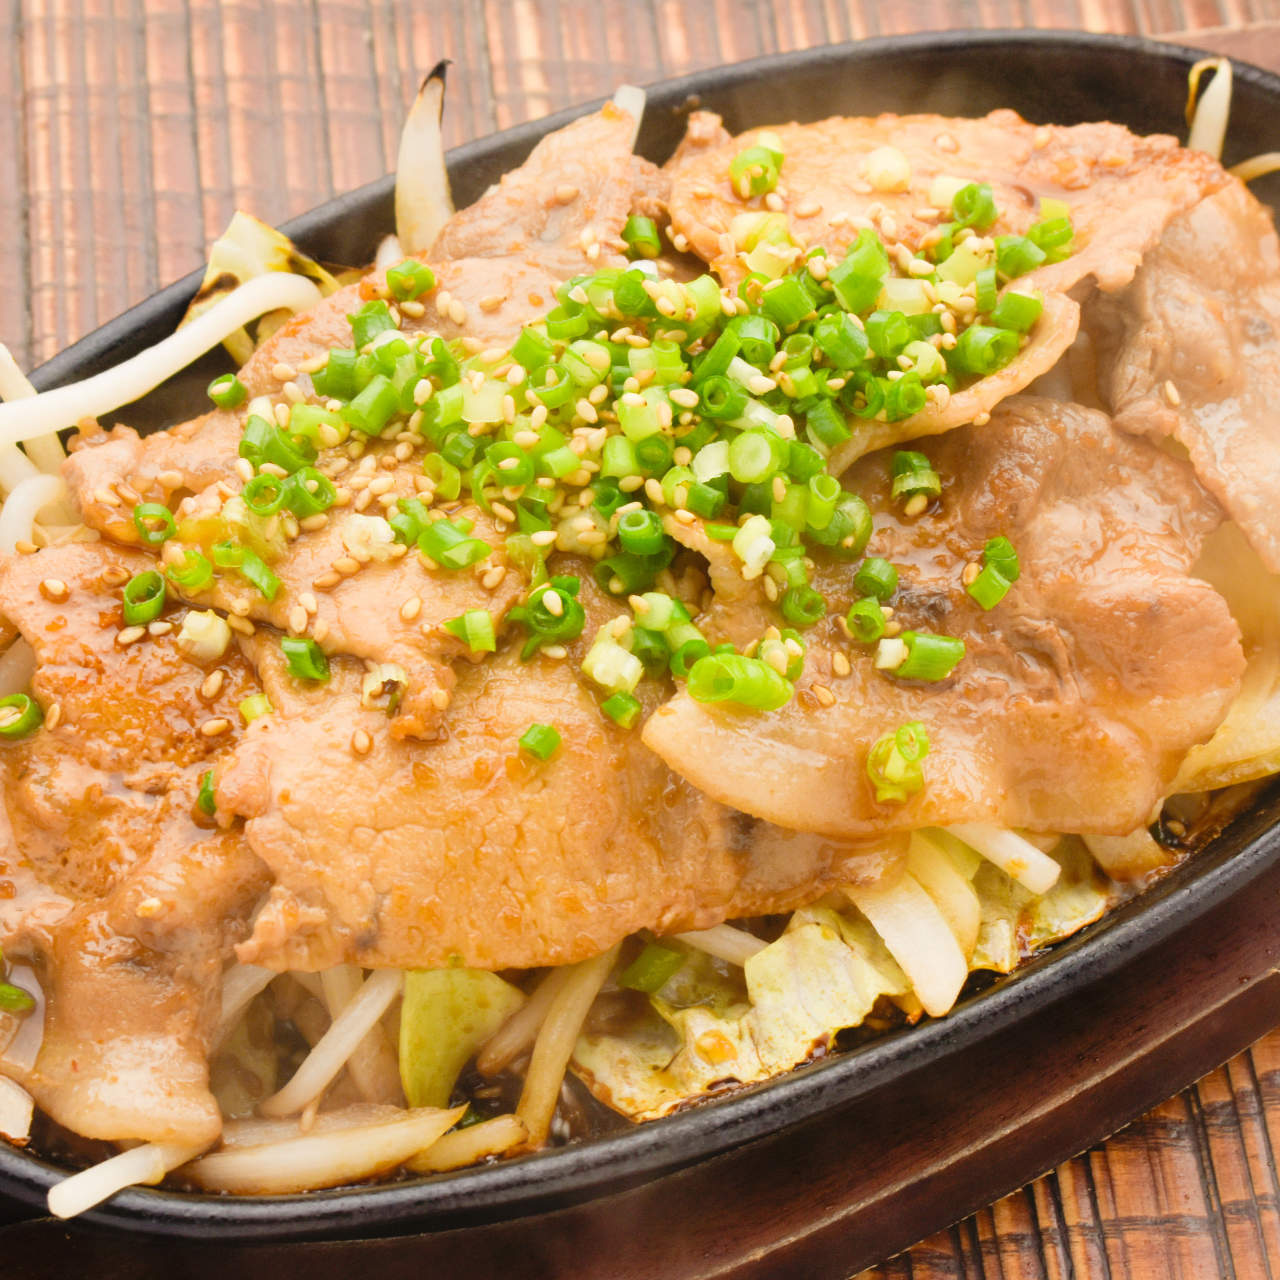 The 10 Best Plenty Of Vegetables in Mie